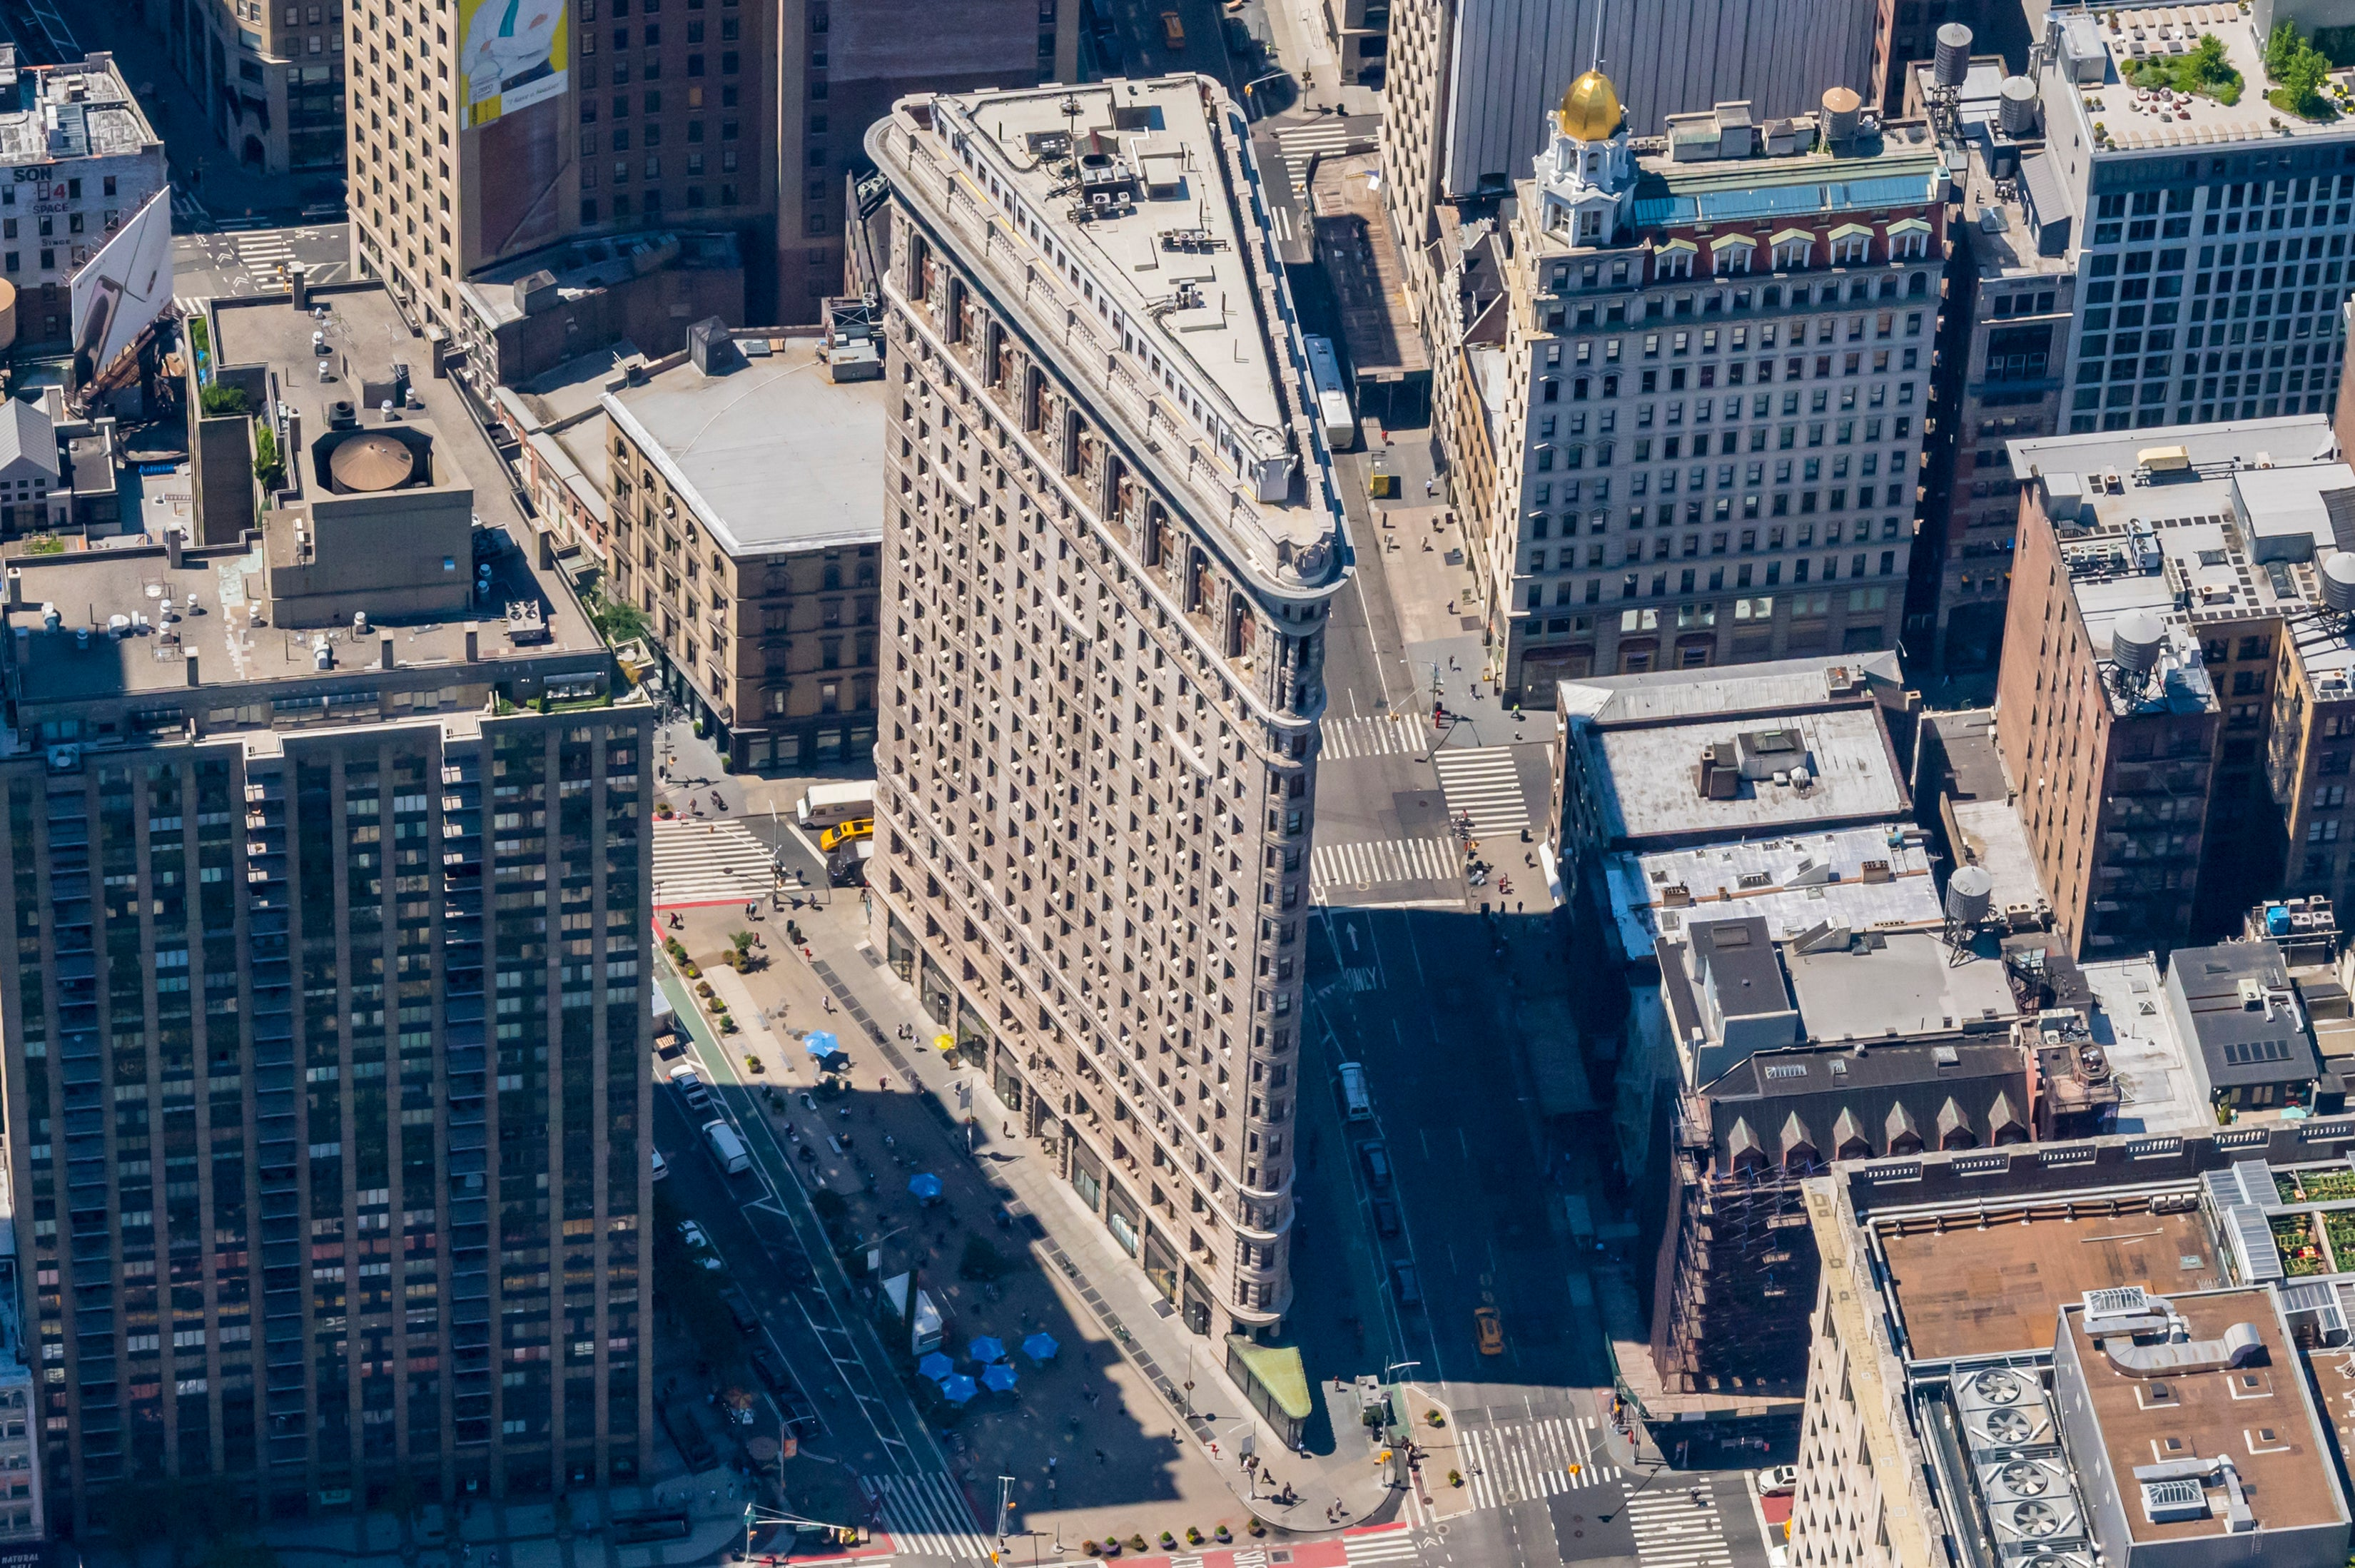 Flatiron Building from Above